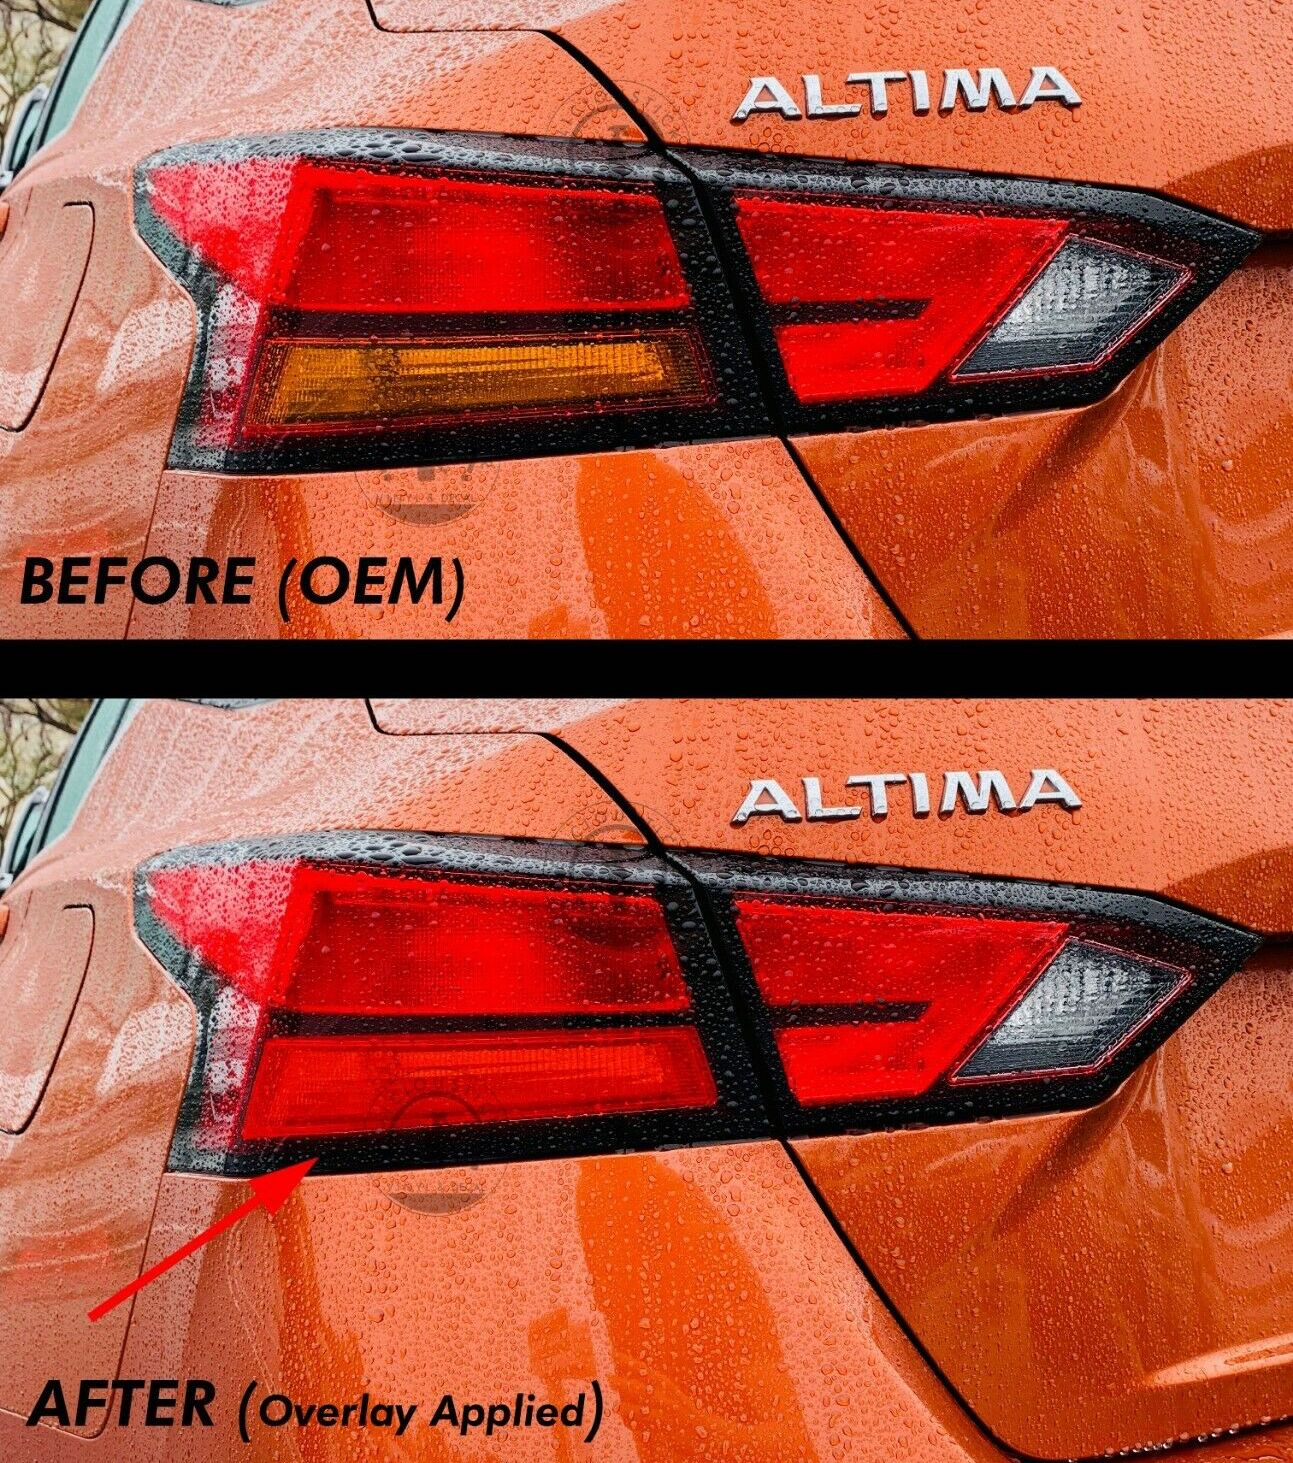 Red Signal Blinker Insert Tail Light Overlay (Fits For: 2019+ Altima)